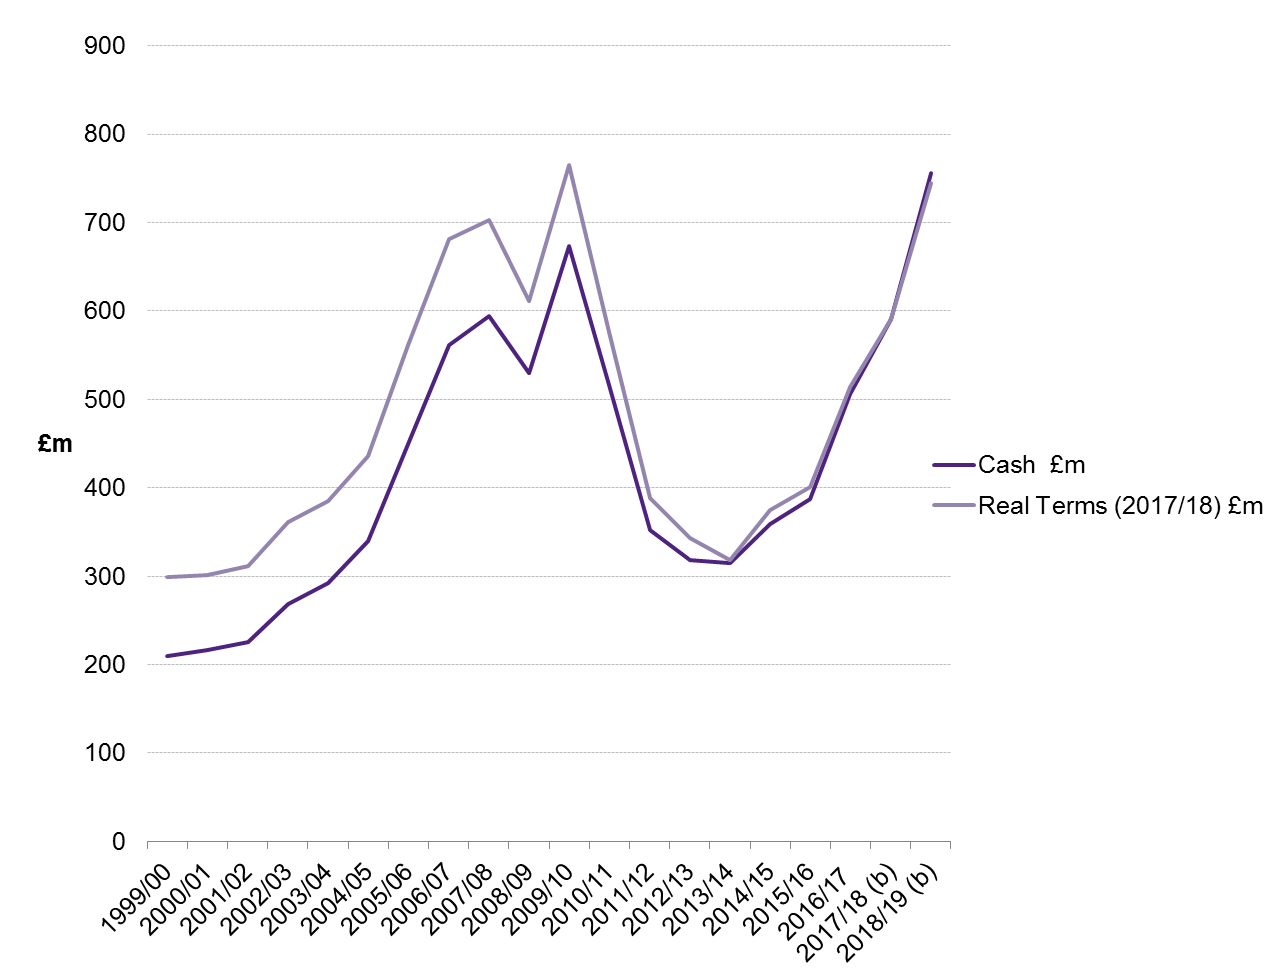 Graph showing the Affordable Housing Supply Expenditure/ Budget, and previous equivalents from 1999/00 to 2018/19